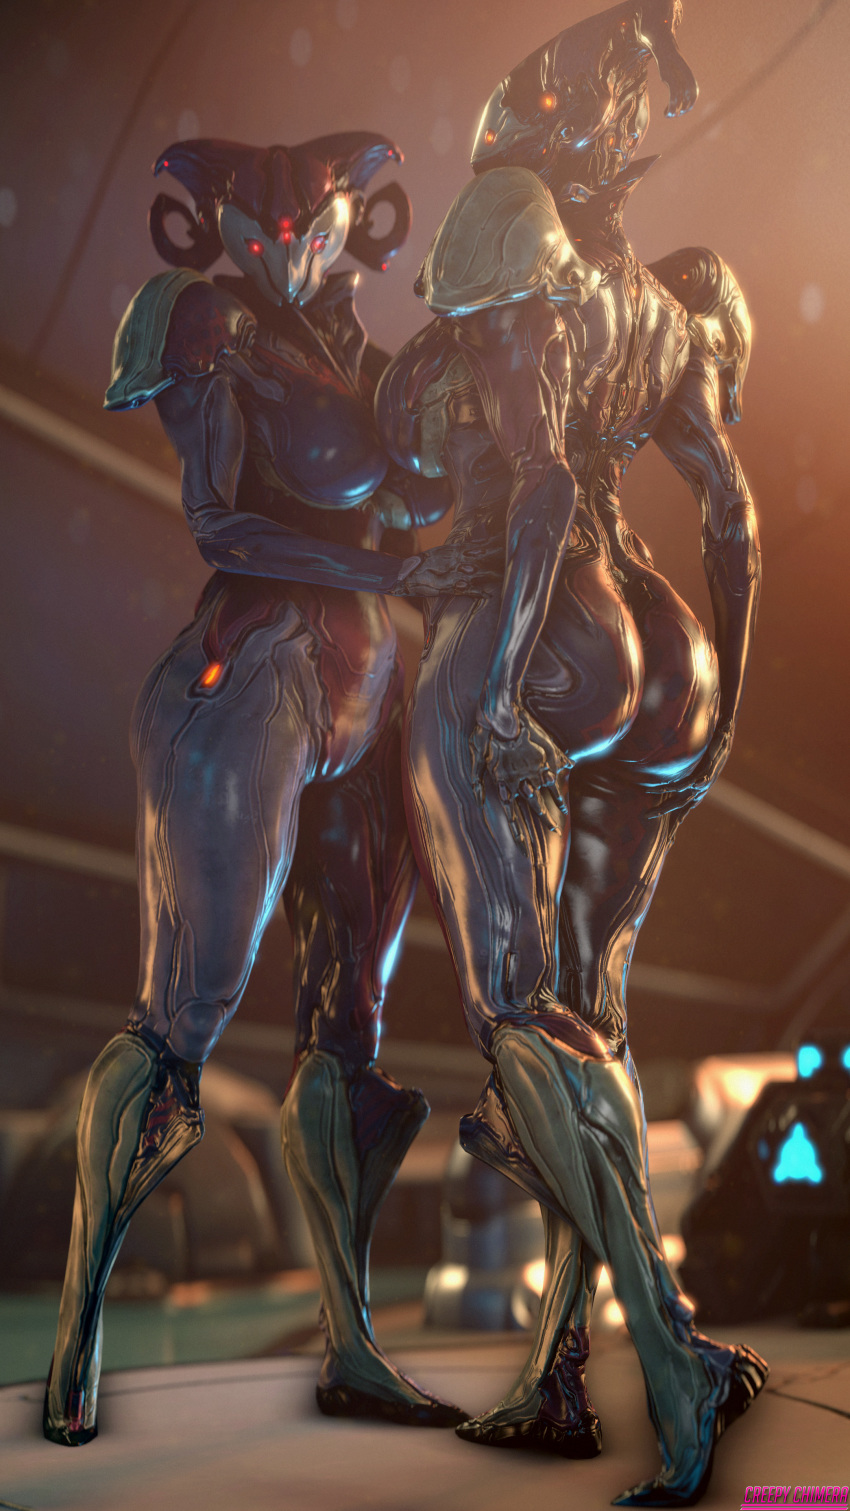 warframe to mirage how get Merlin seven deadly sins naked